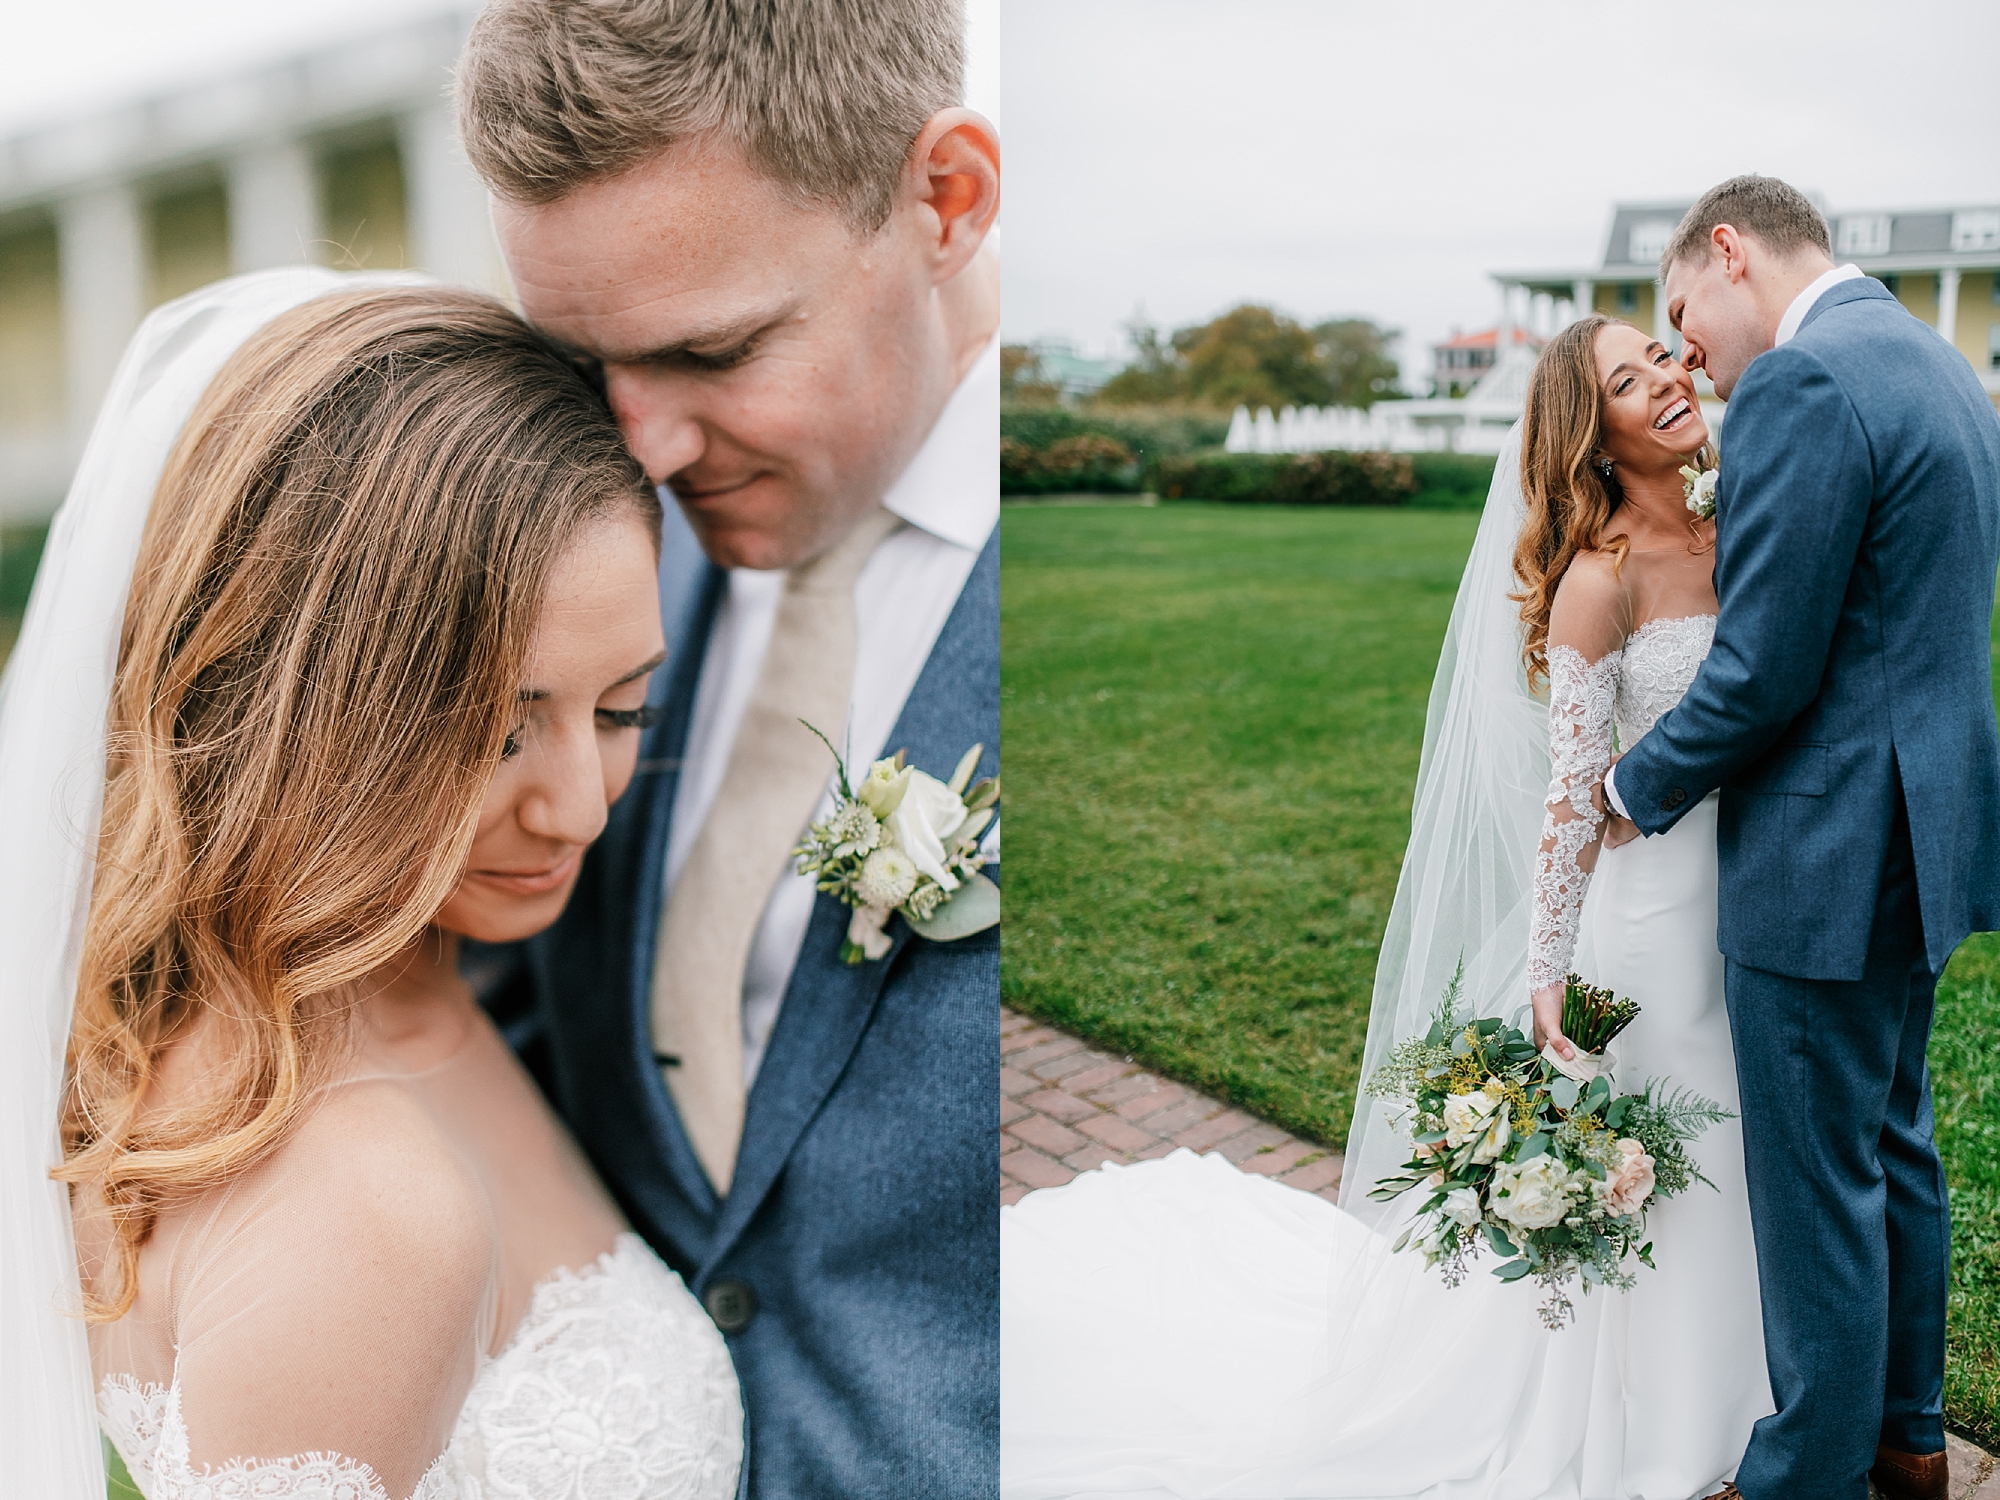 Intimate and Joyful Wedding Photography in Cape May NJ by Magdalena Studios 0018 4